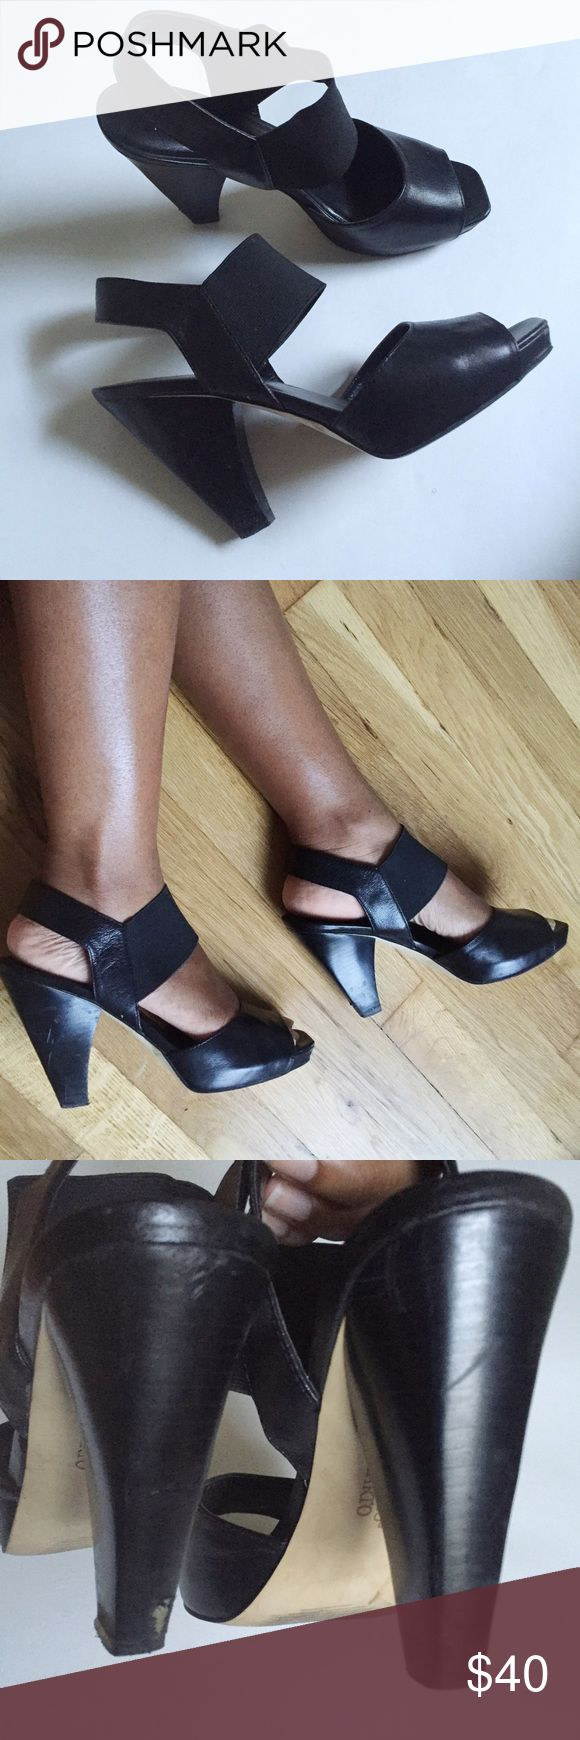 Franco Sarto heels Black  3 inch heels have been previously loved sketches on the heels as shown in photos these are the most comfy stylish heels I have ever own they still need love !!!❤️ Franco Sarto Shoes Heels